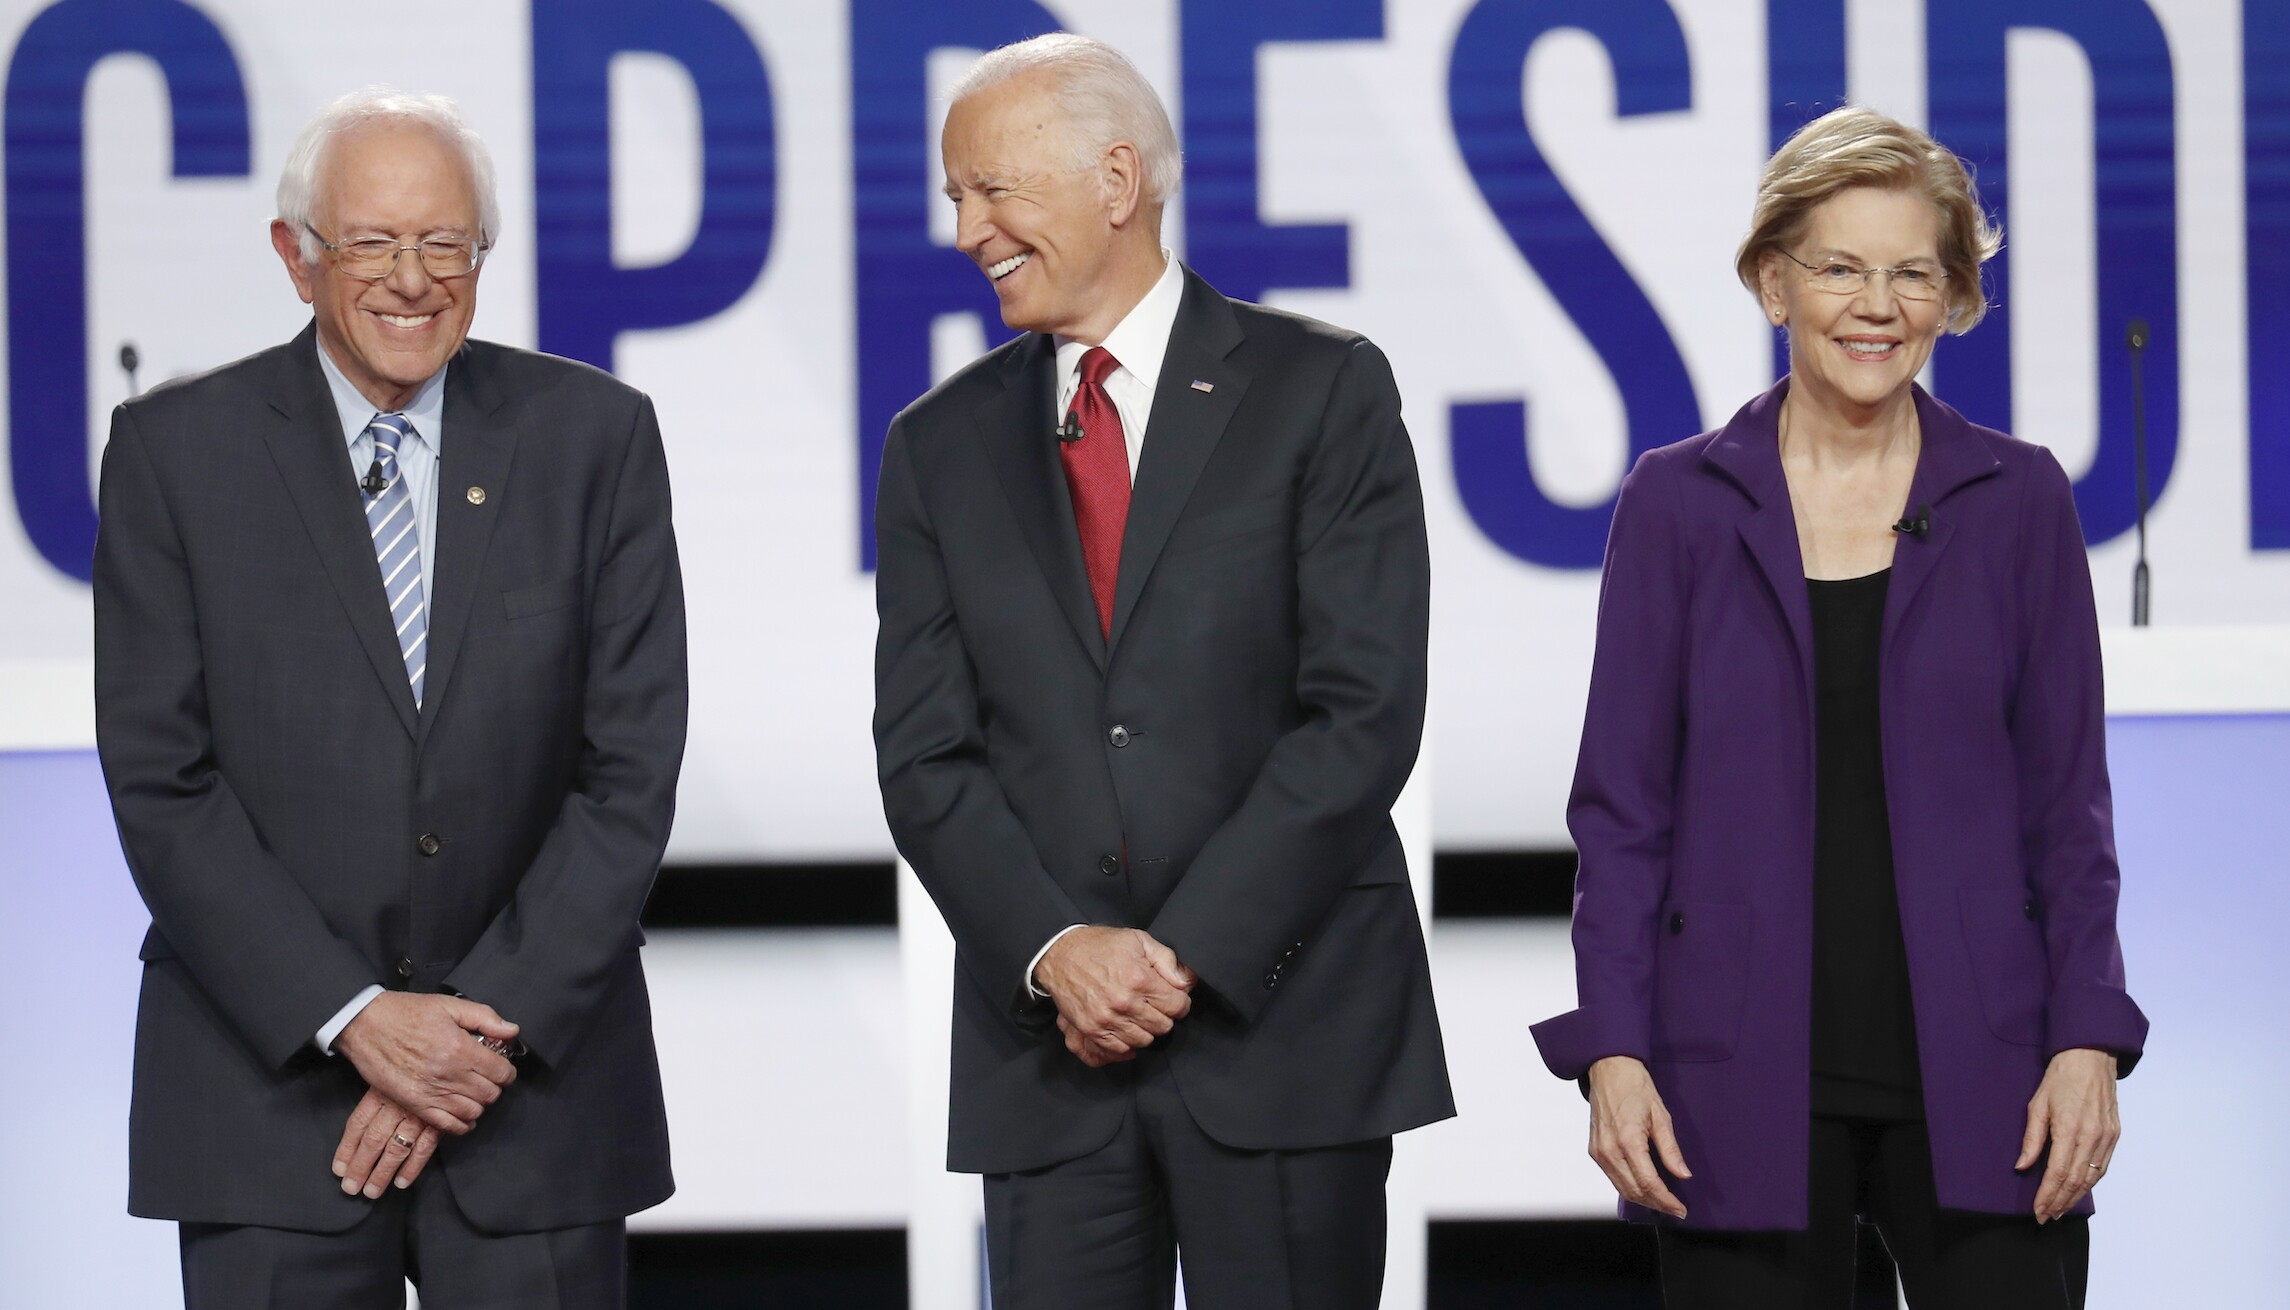 Joe Biden admitted his son Hunter's Ukraine business dealings were shady; in tonight's Democratic debate, he defended them anyway